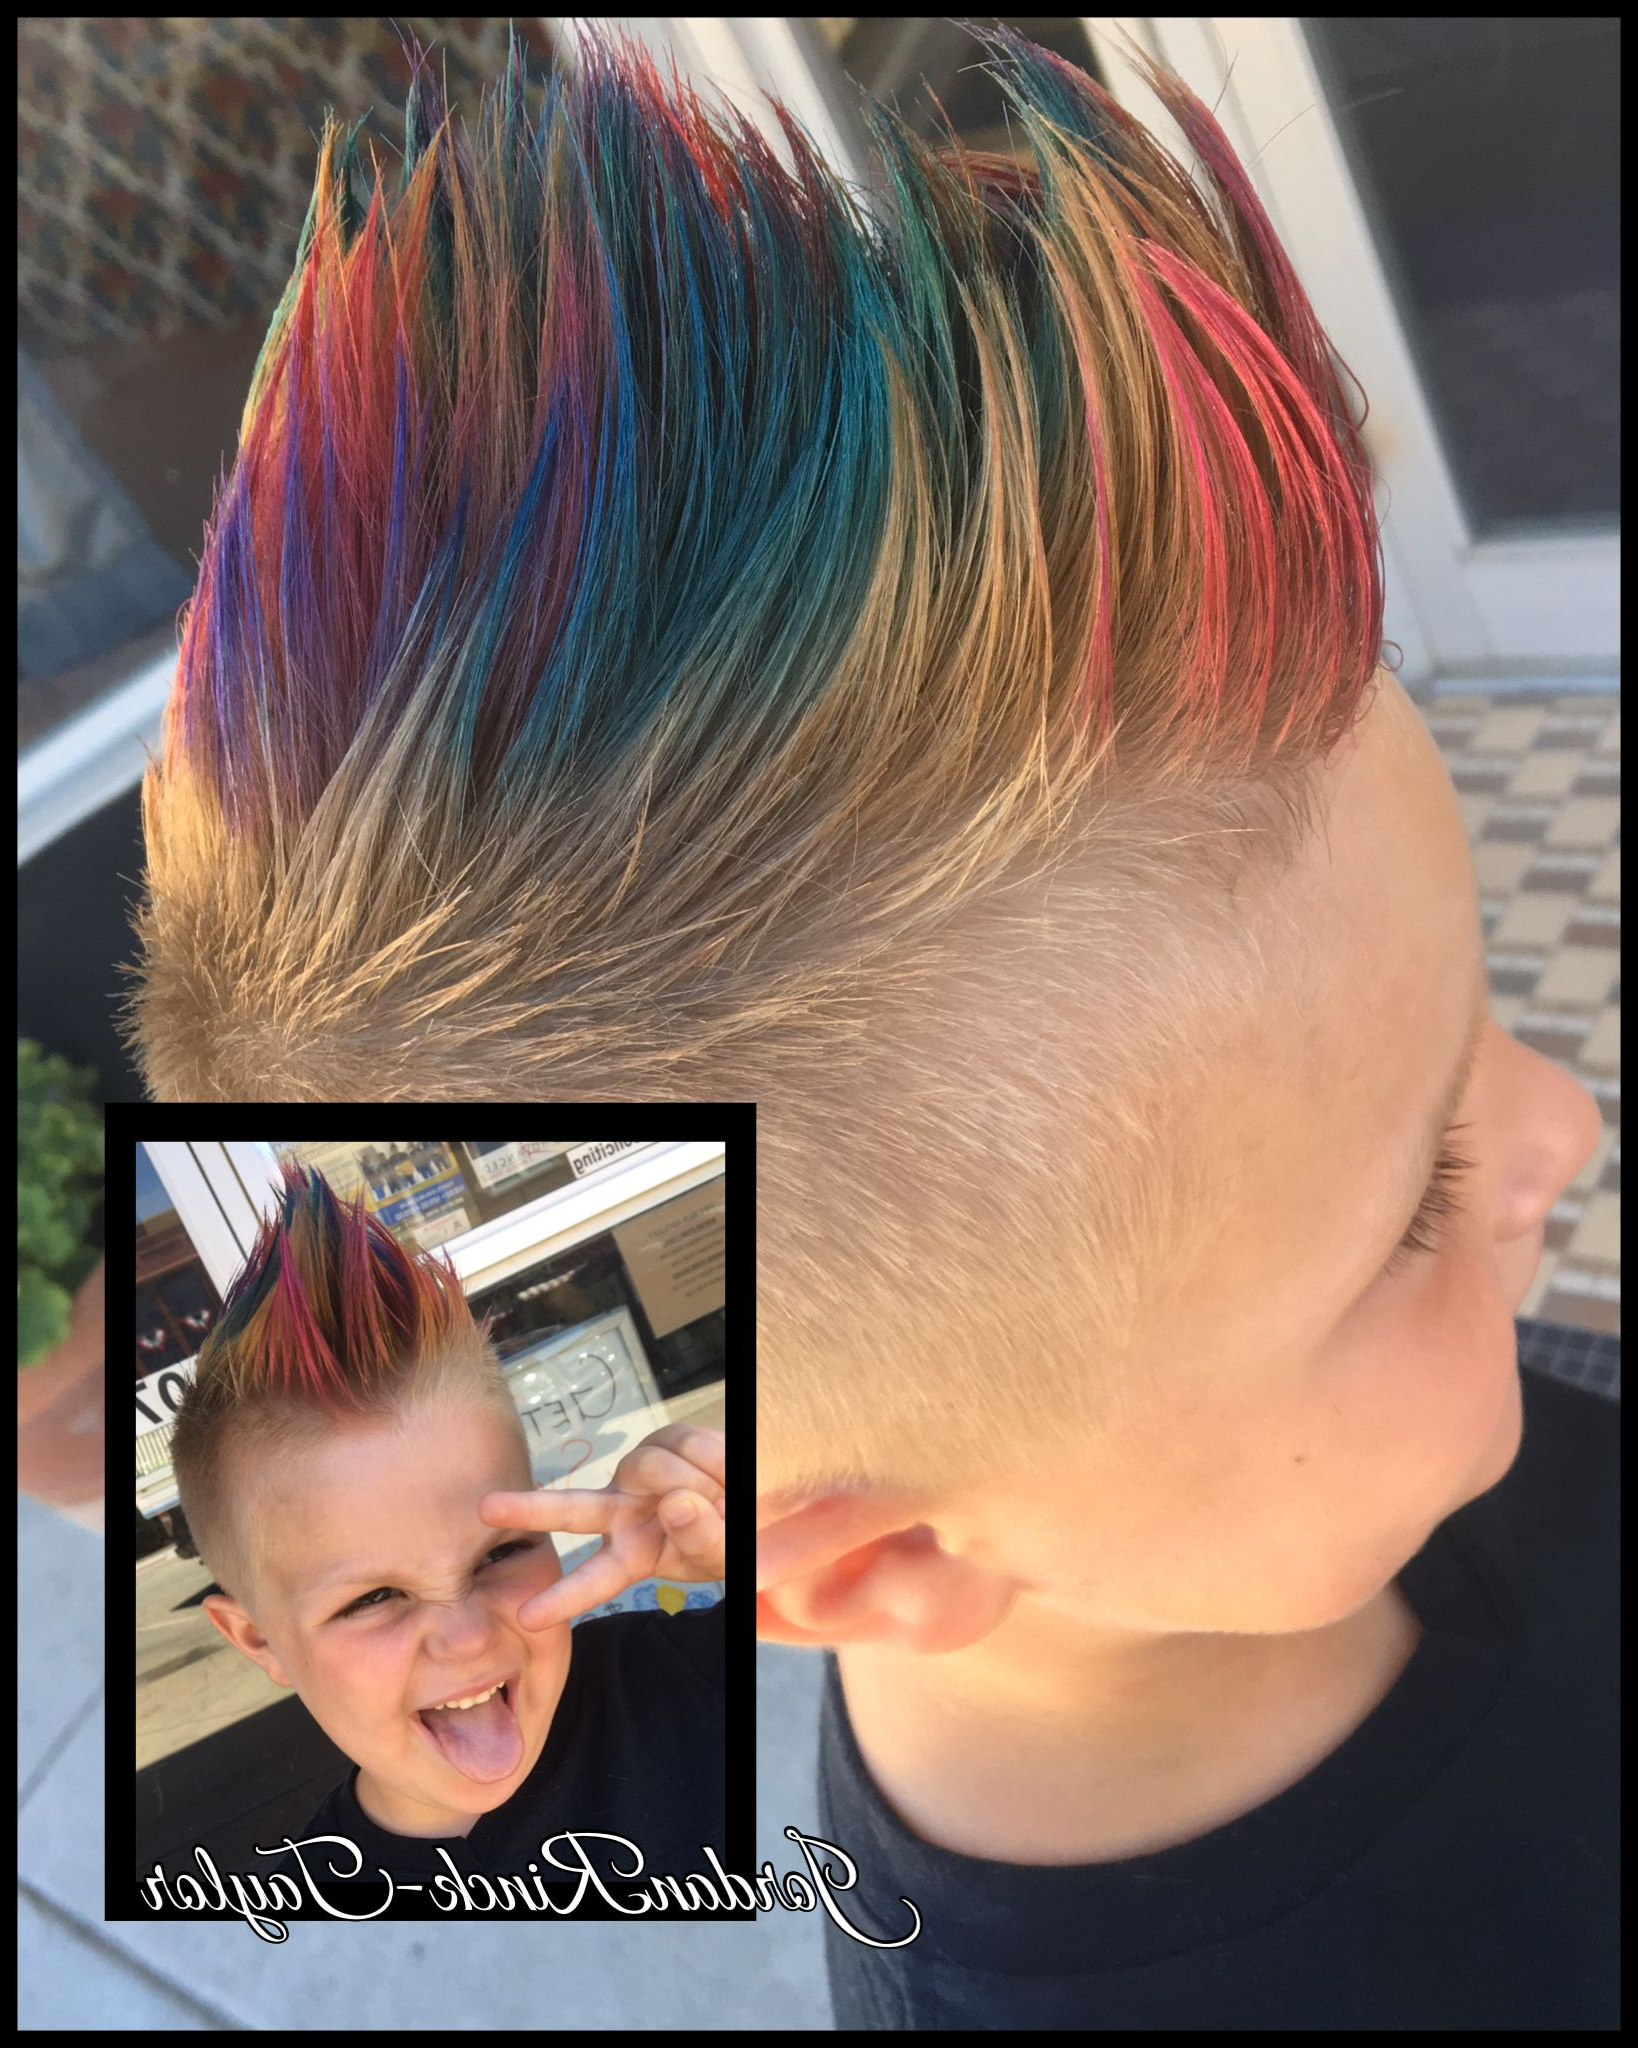 Well Known Rainbow Bright Mohawk Hairstyles For Rainbow Mohawk. Kids Haircuts (View 18 of 20)